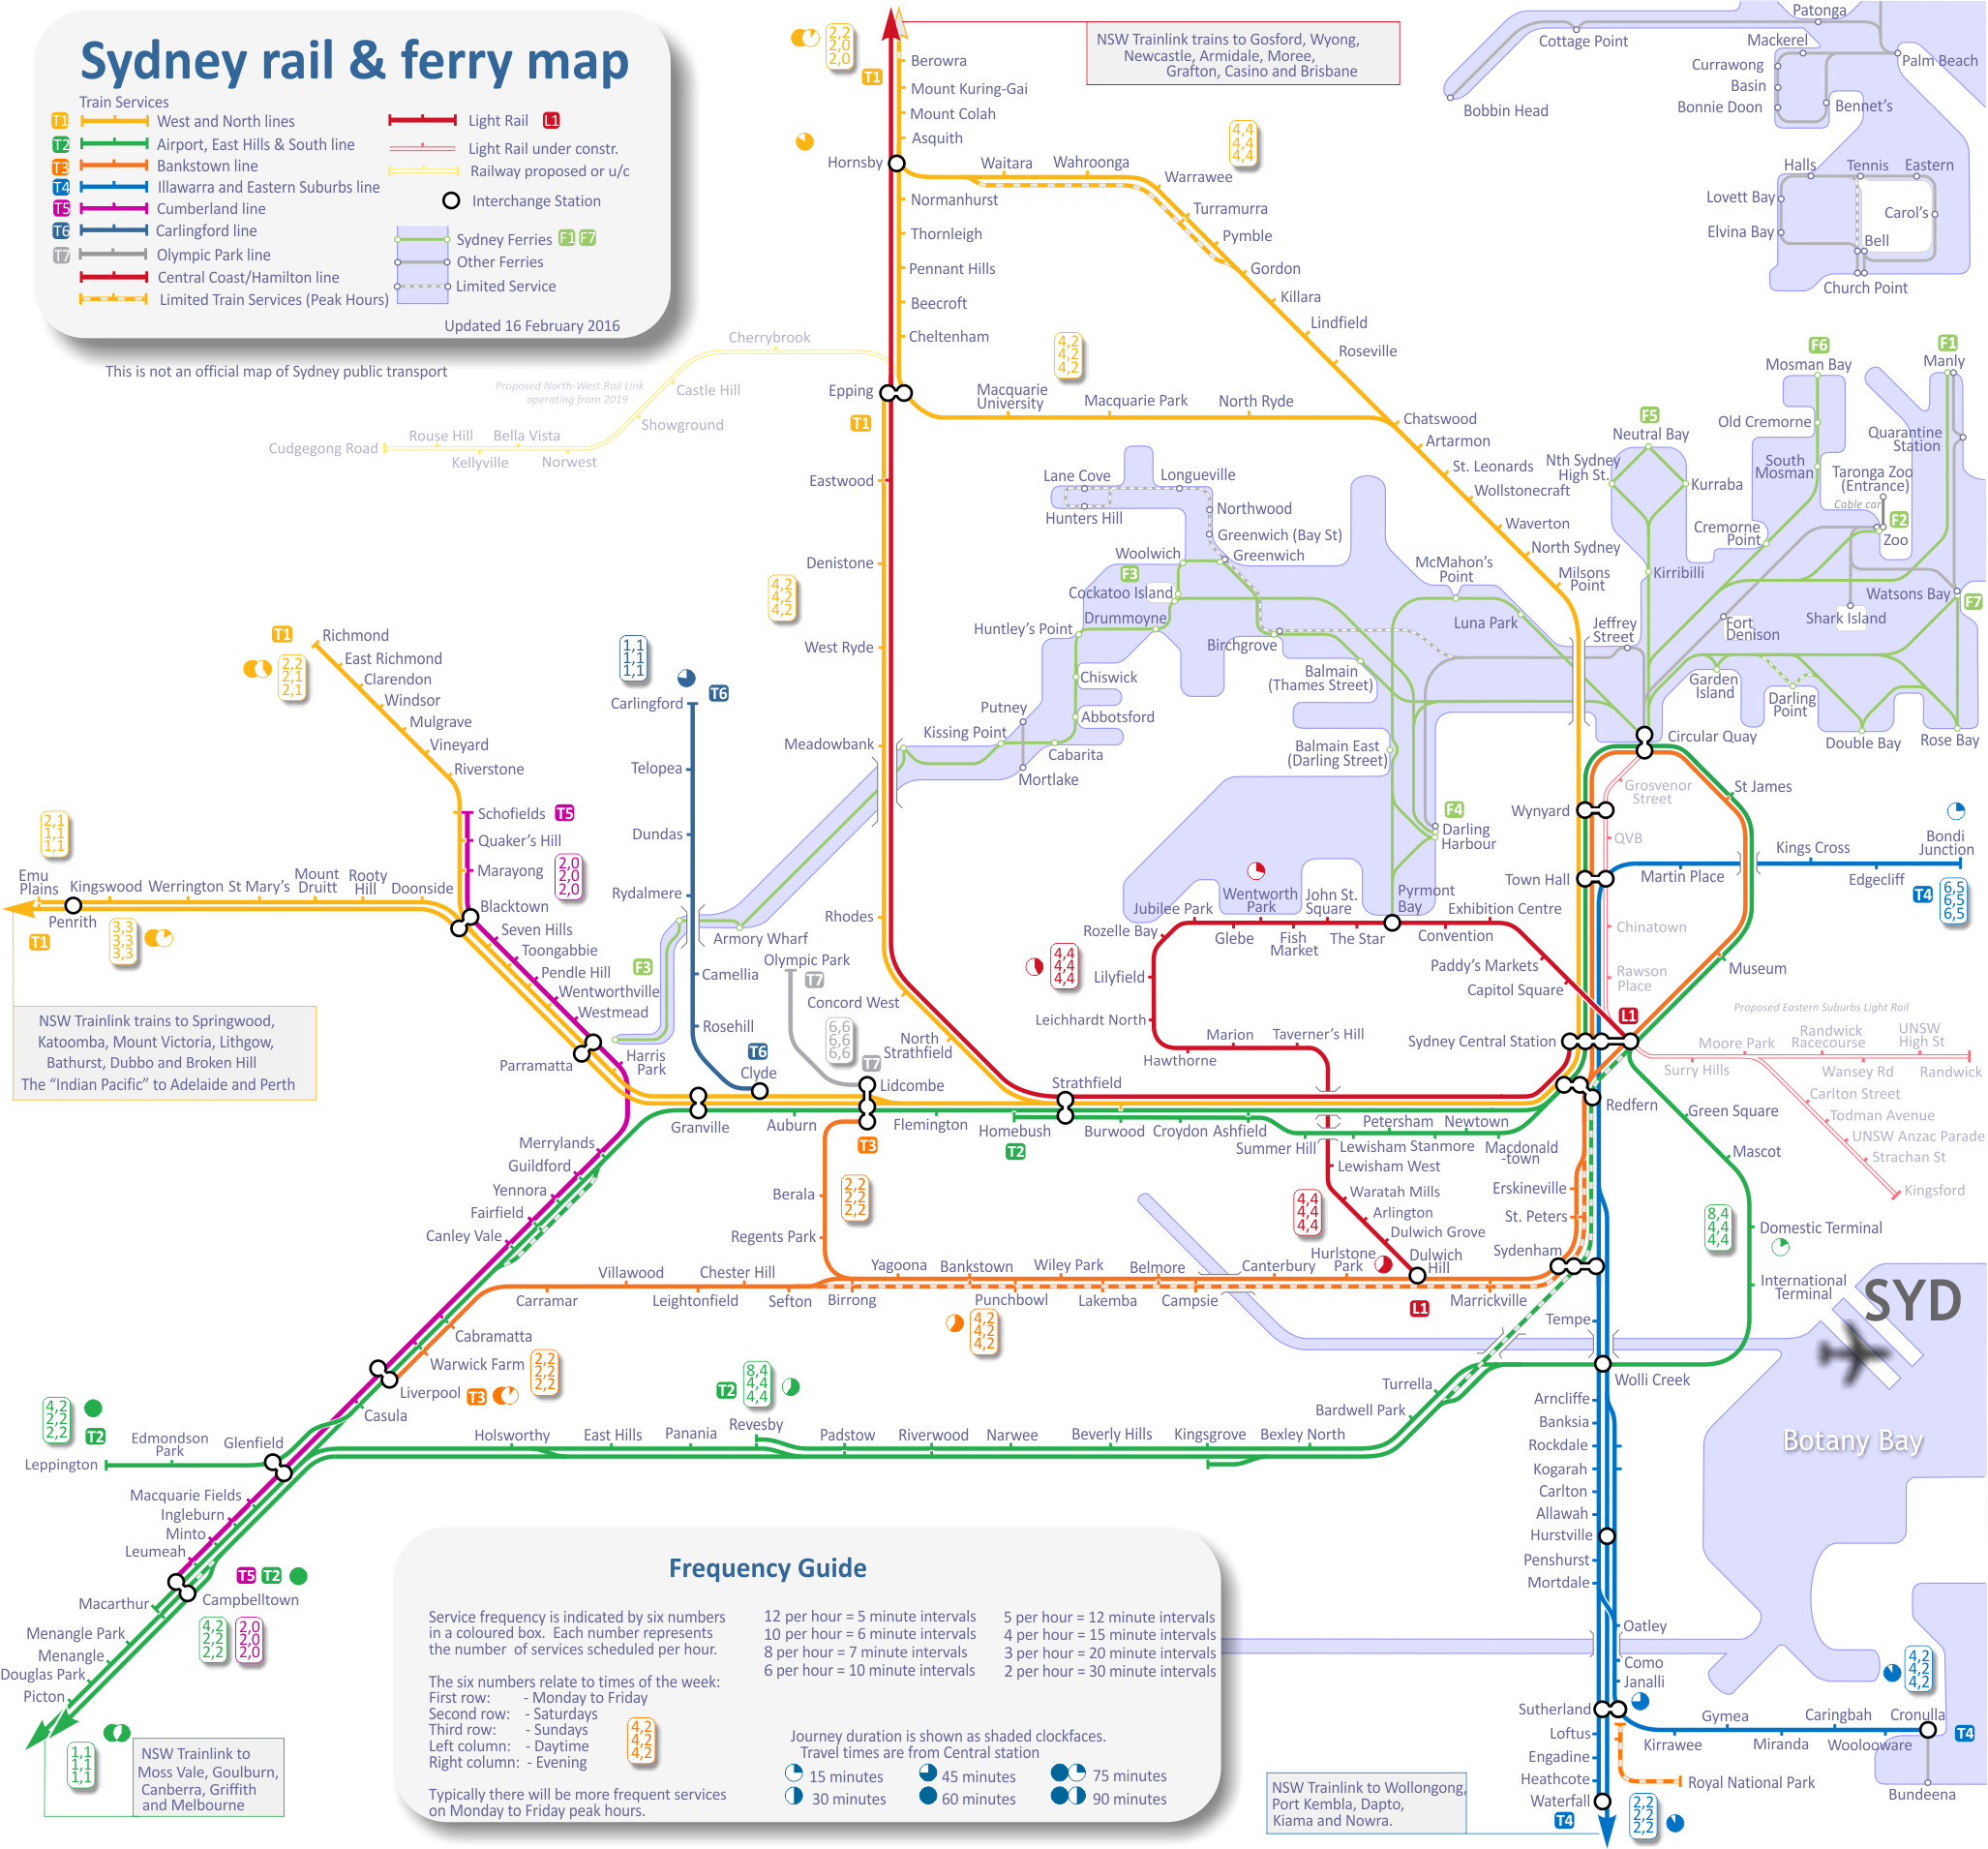 Sydney cbd train station map. 🏷️ Transport NSW Sydney ...